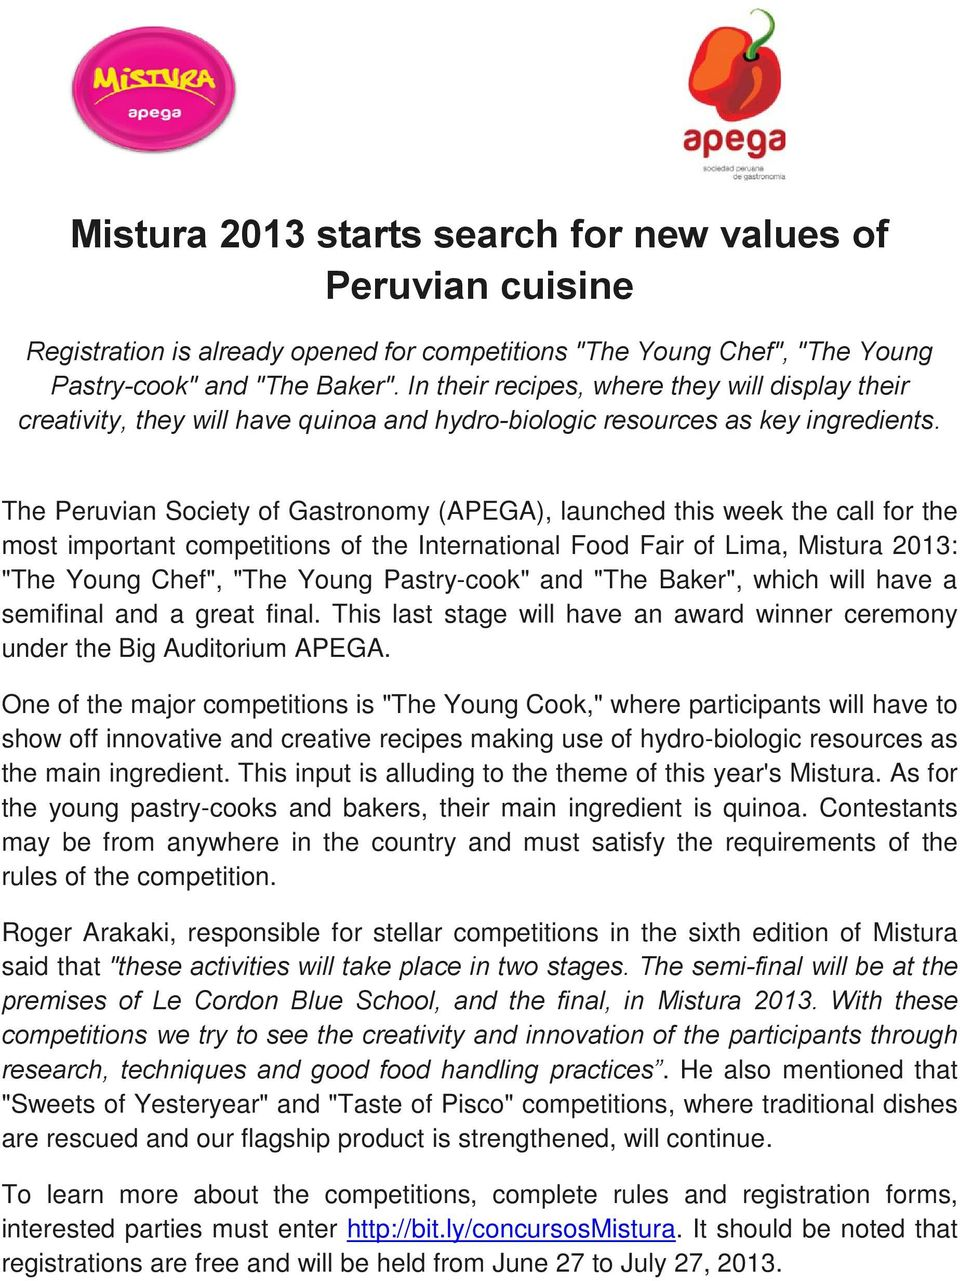 "The Peruvian Society of Gastronomy (APEGA), launched this week the call for the most important competitions of the International Food Fair of Lima, Mistura 2013: ""The Young Chef"", ""The Young"